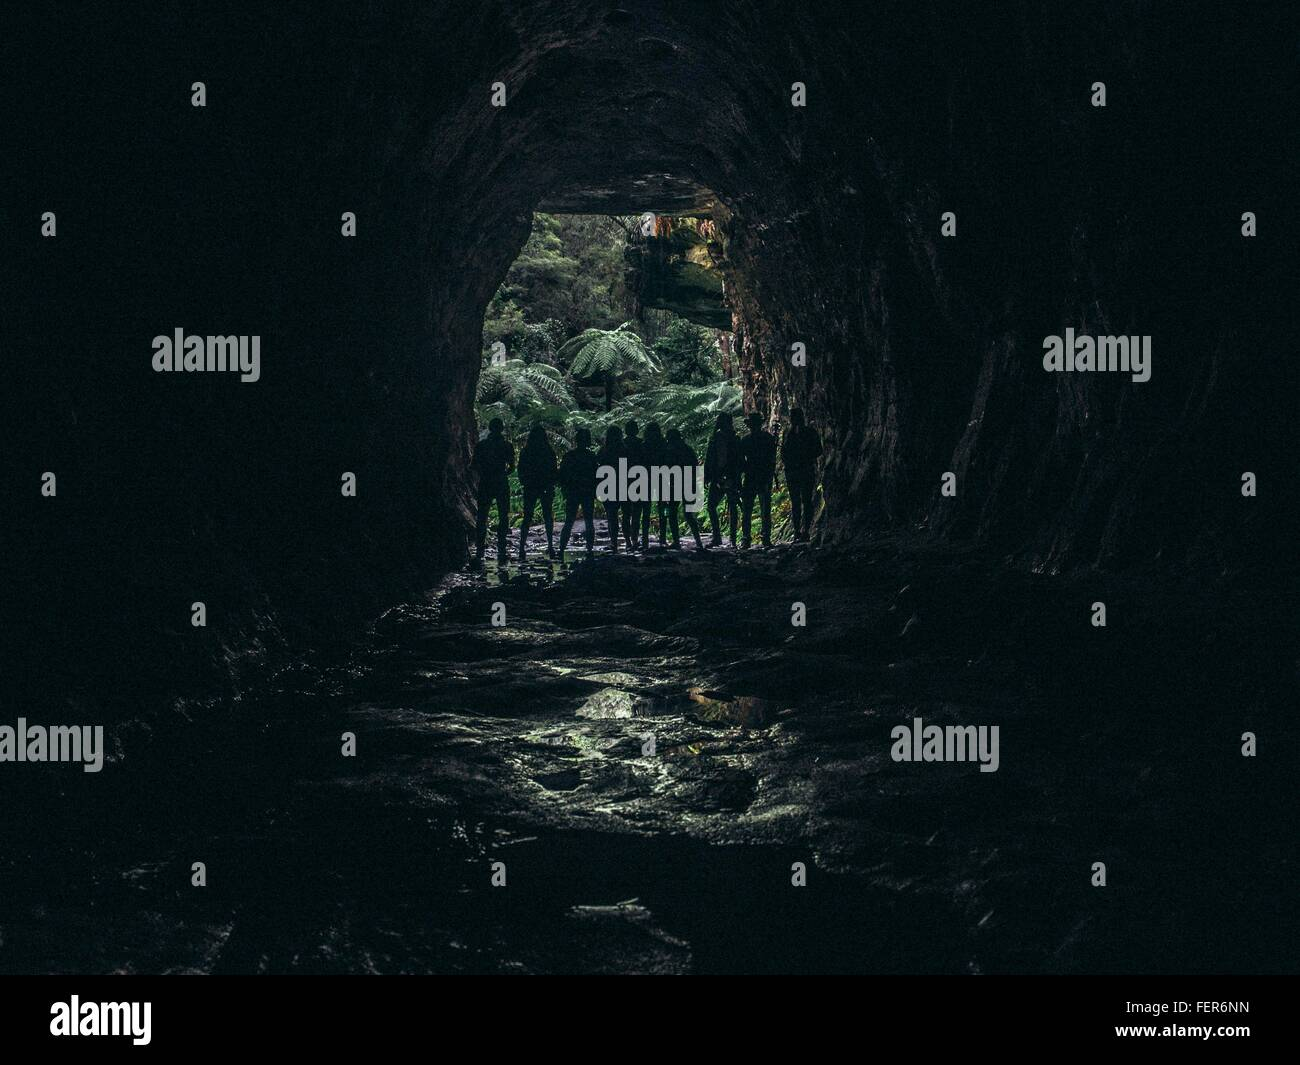 Silhouette Of People Standing At Entrance Of Cave - Stock Image